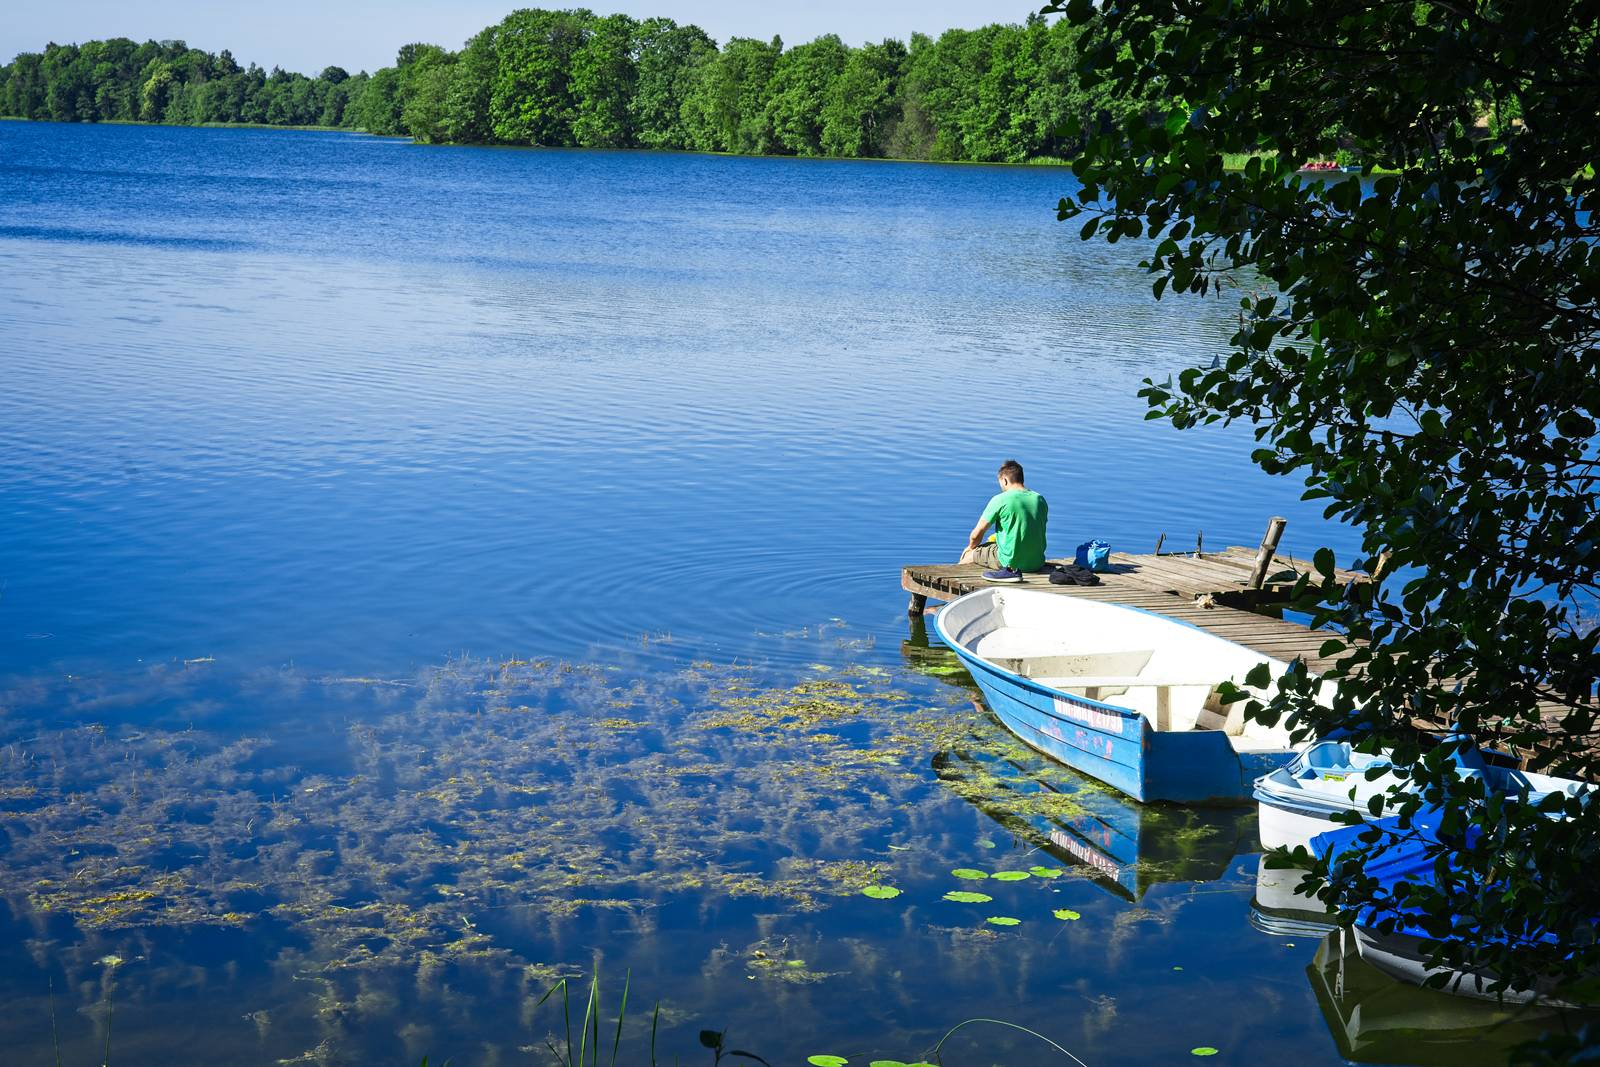 I want to go to Mazury – how do I get there?